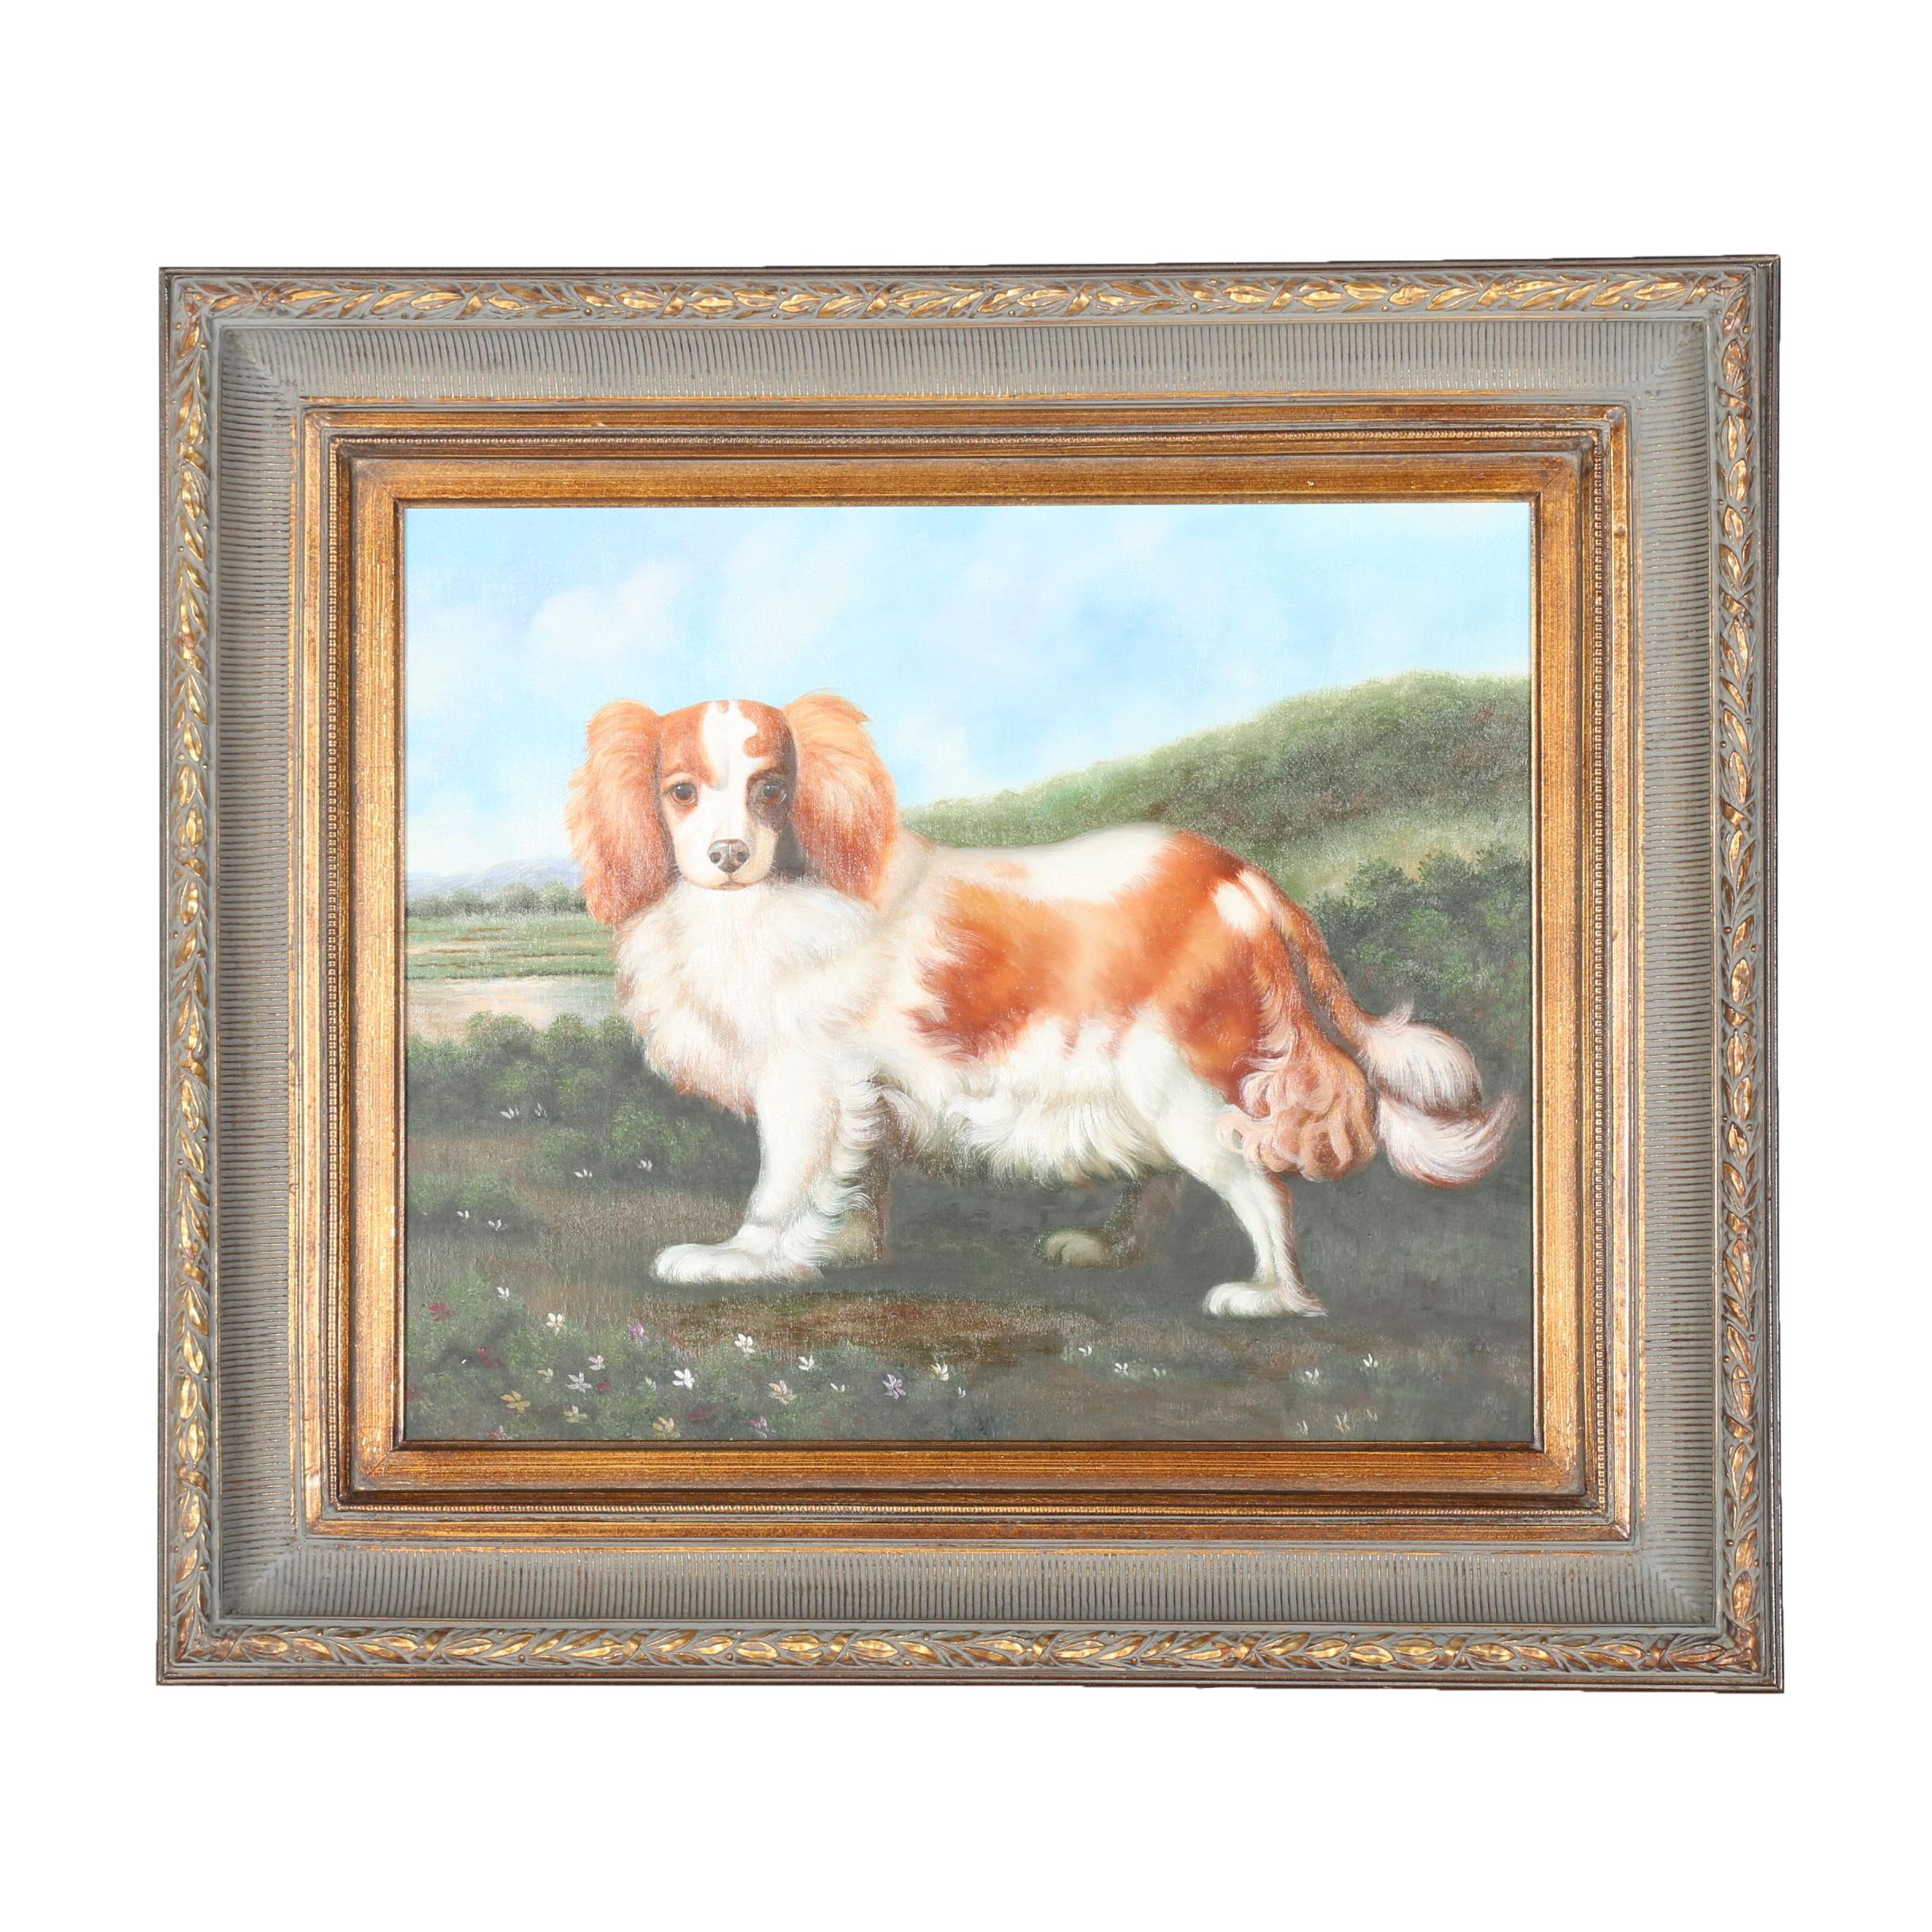 Original Oil On Canvas Painting Of A Spaniel